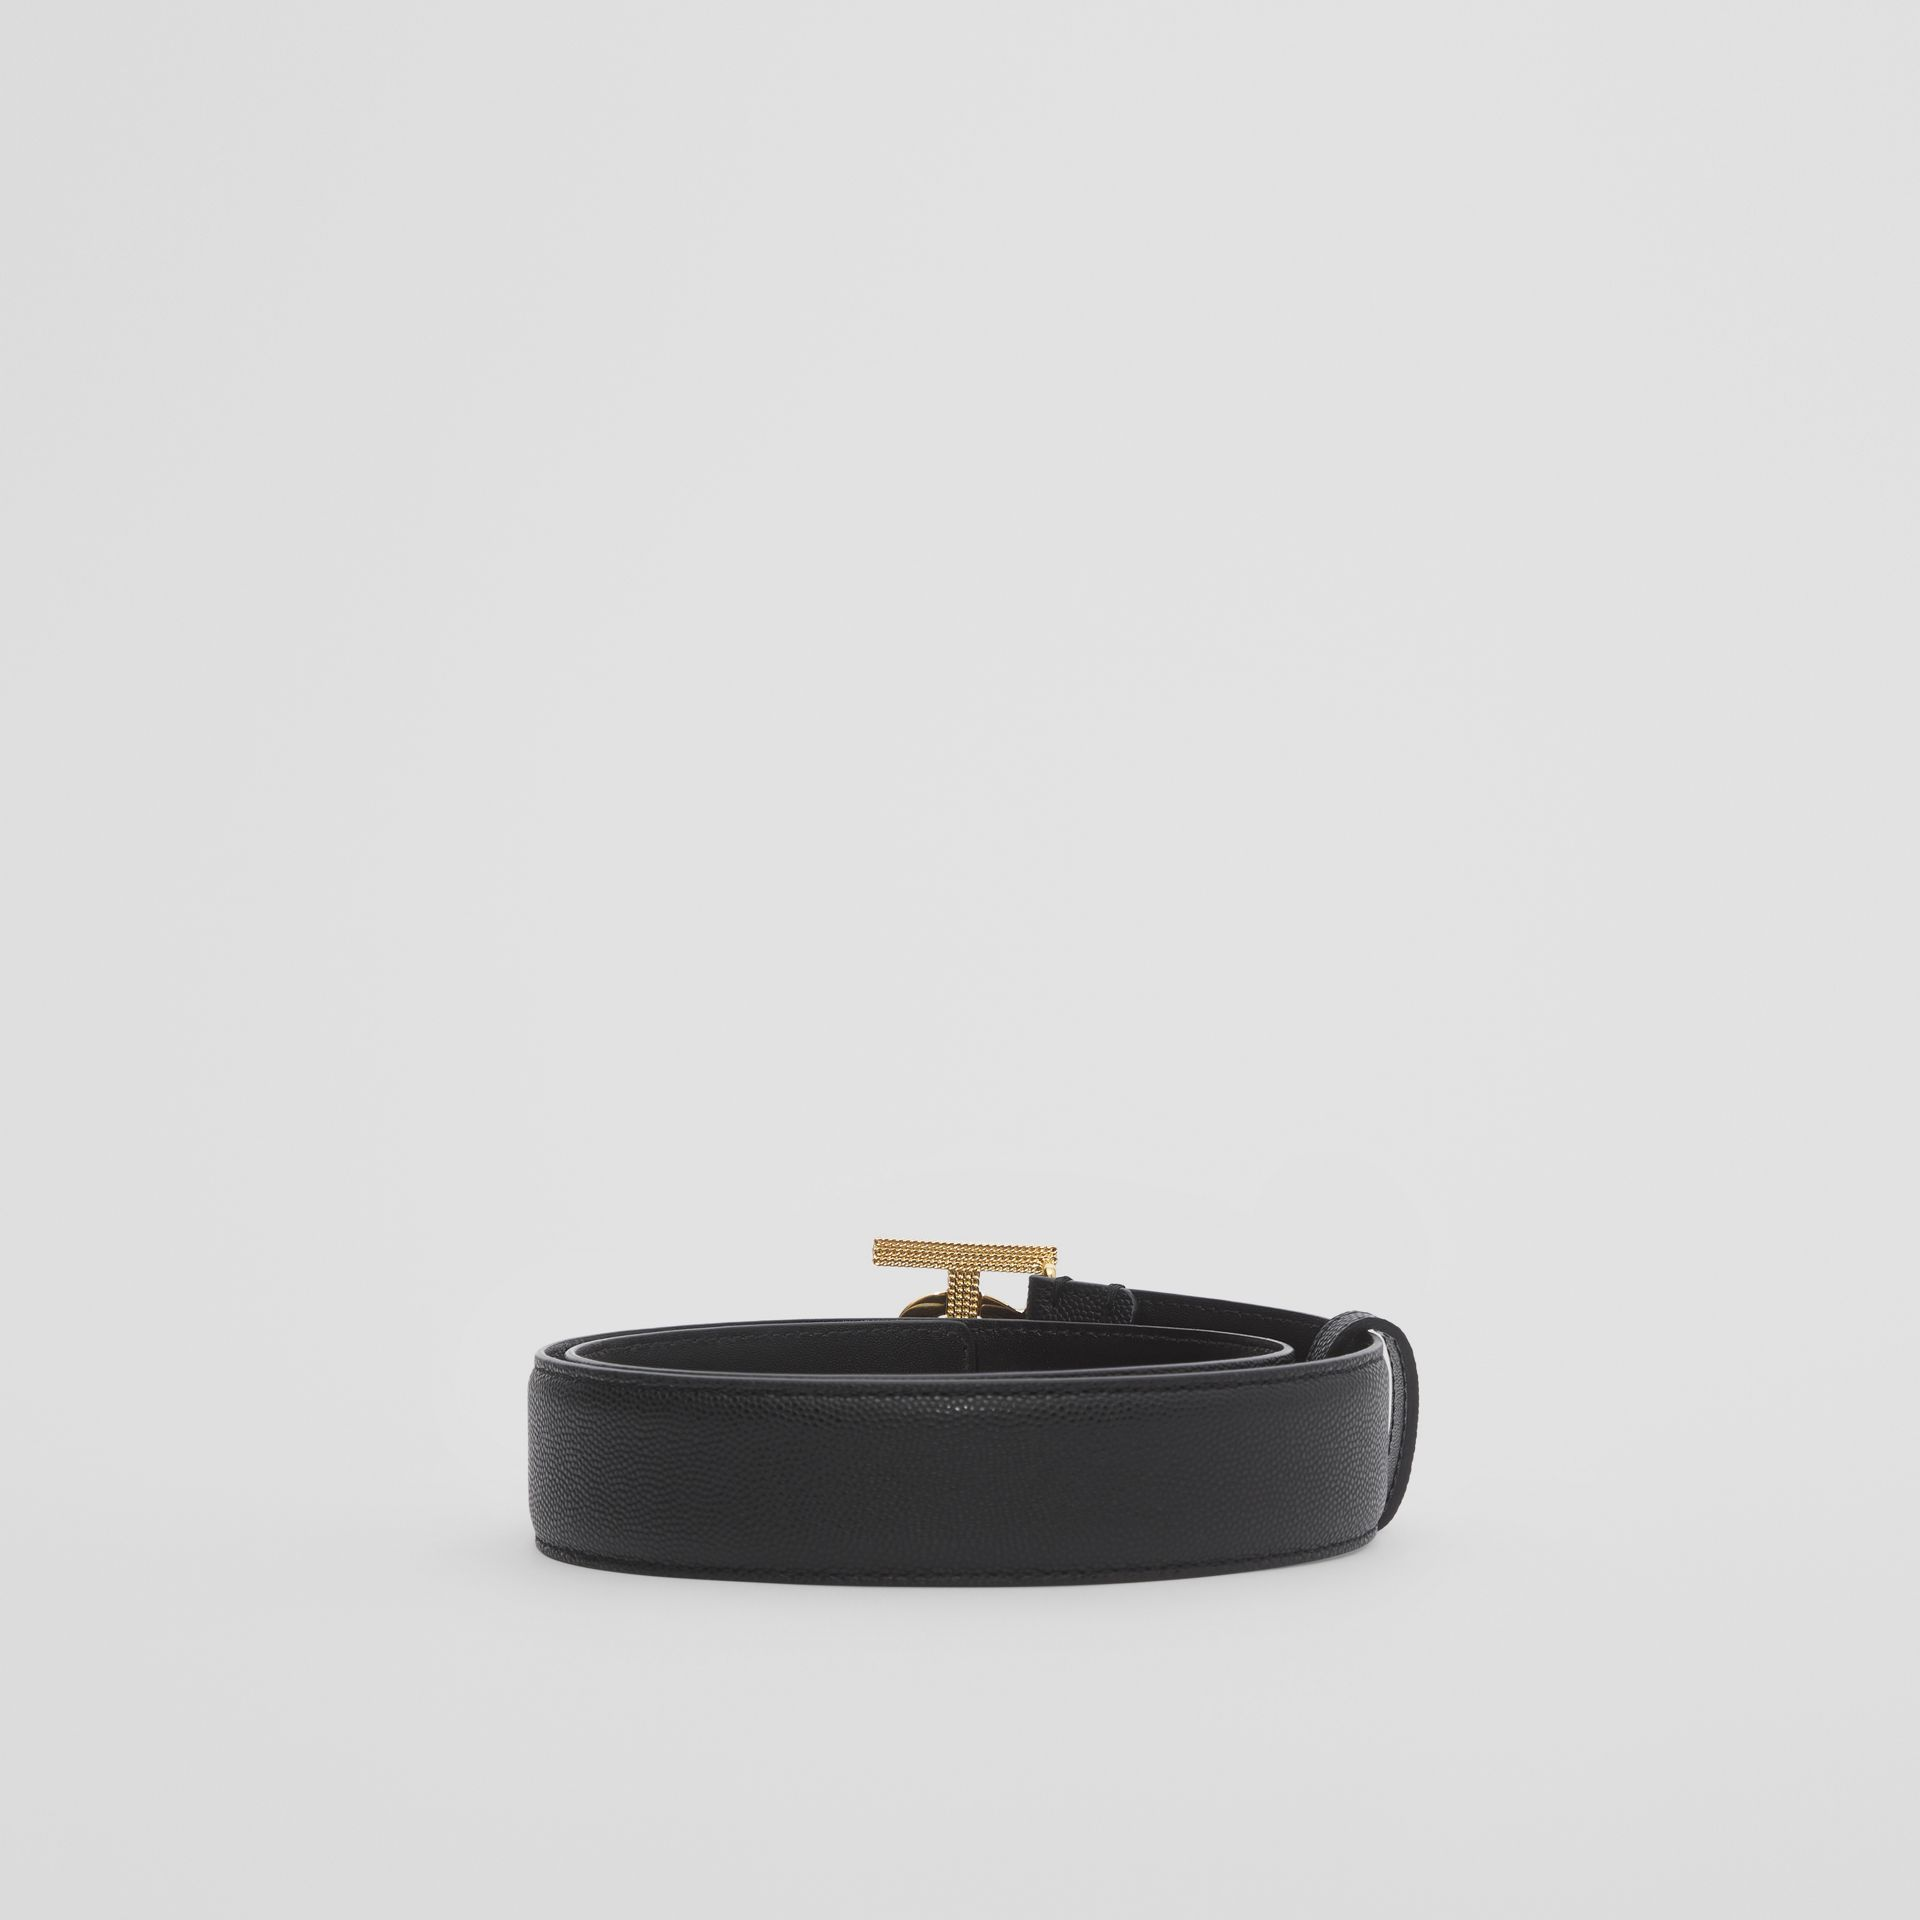 Monogram Motif Grainy Leather Belt in Black/light Gold - Women | Burberry - gallery image 3